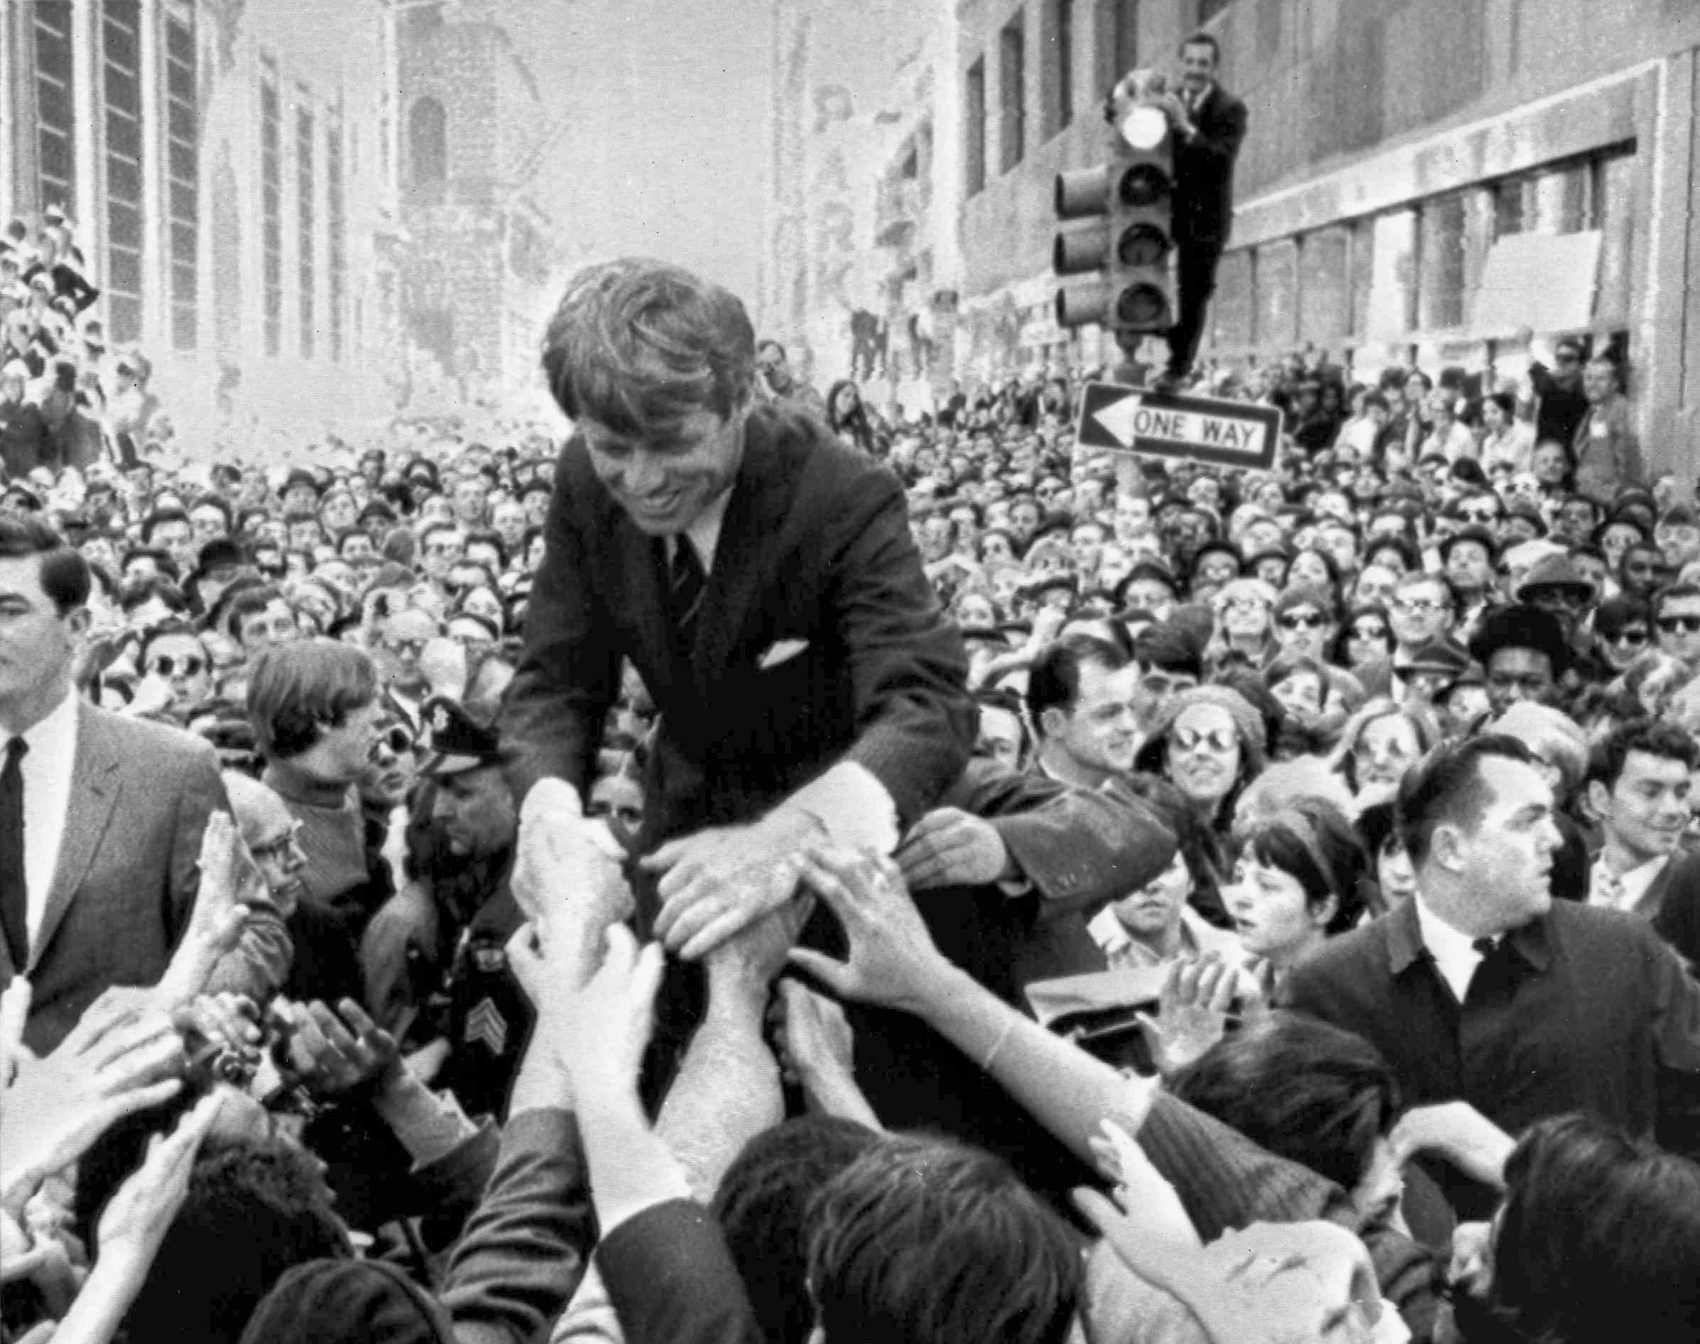 In this April 2, 1968 file photo U.S. Sen. Robert F. Kennedy, D-NY, shakes hands with people in a crowd while campaigning for the Democratic party's presidential nomination on a street corner, in Philadelphia. (Warren Winterbottom/AP)